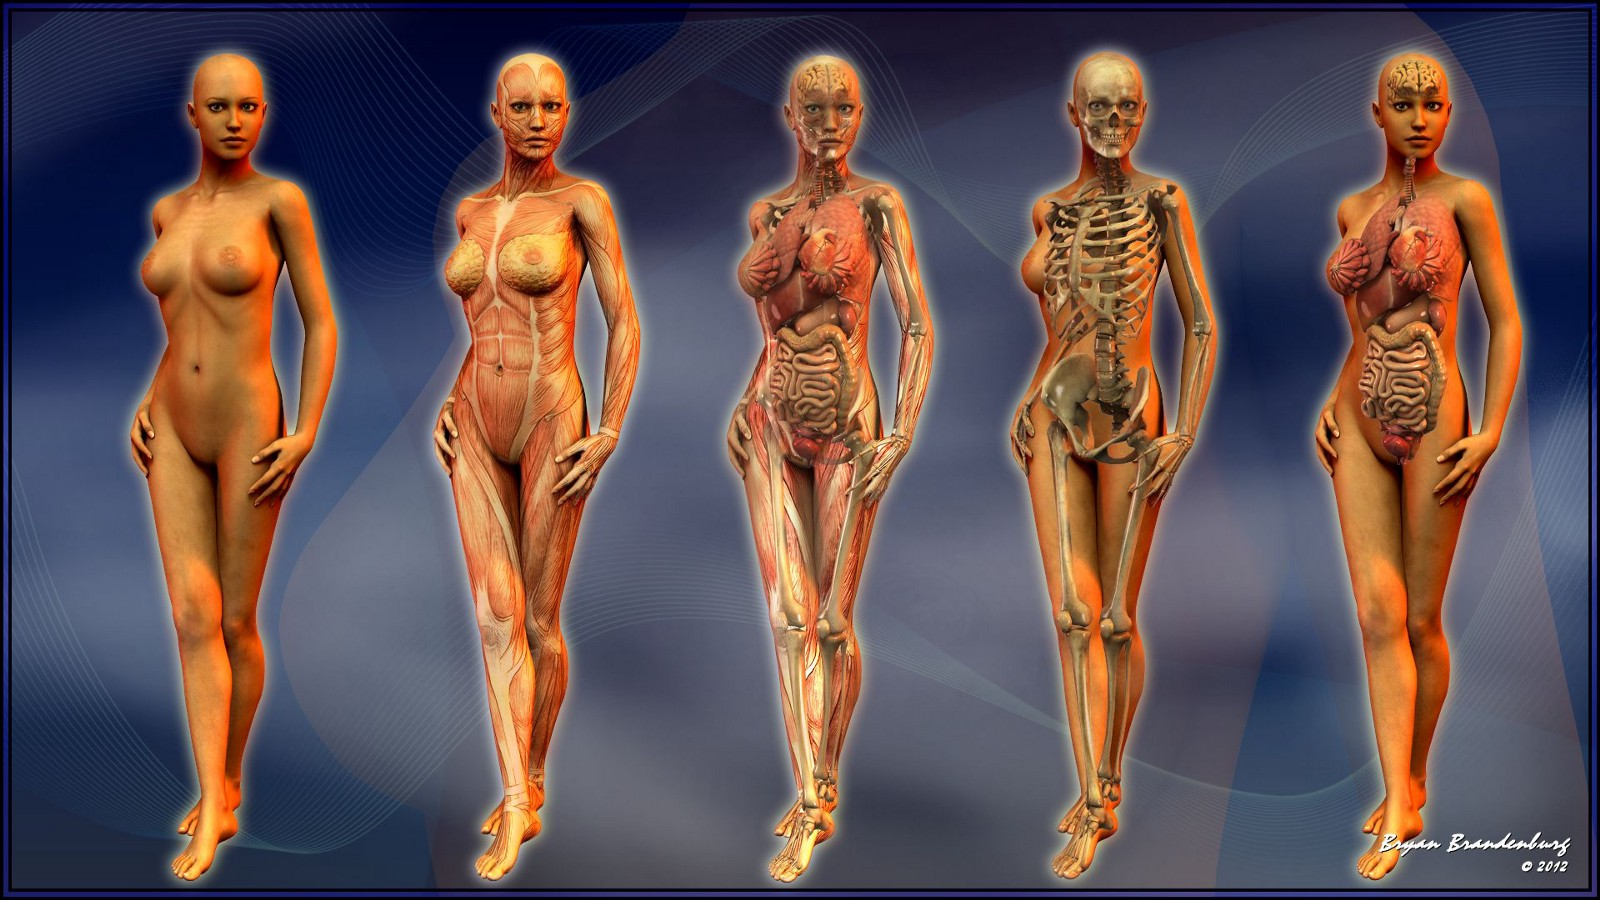 Female Anatomy Models Educating Women About Their Bodies